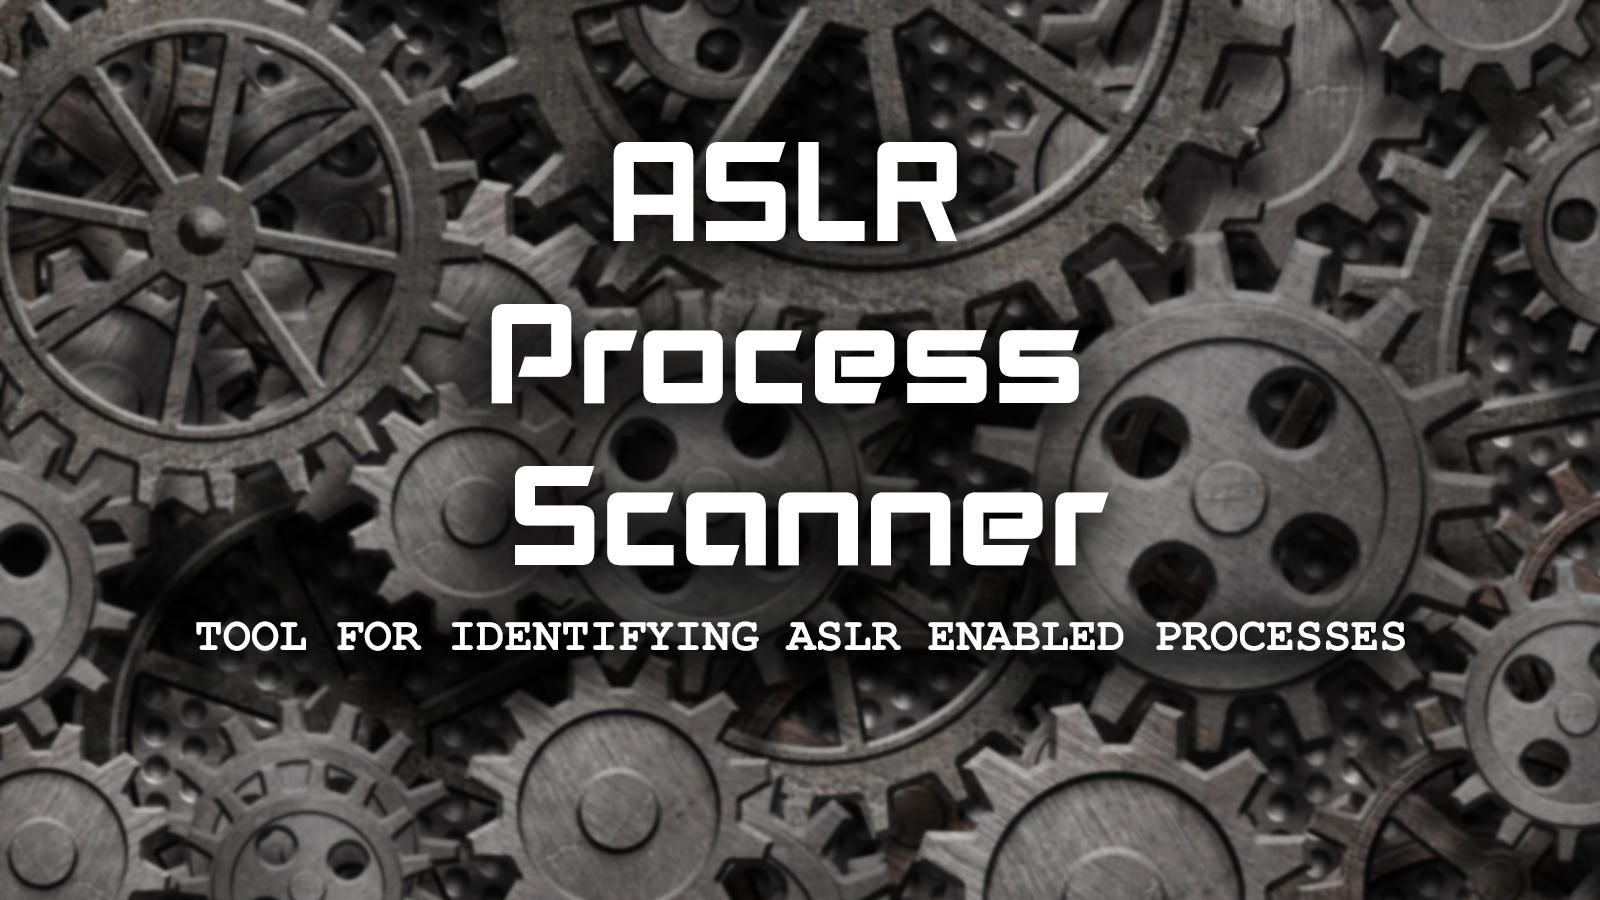 ASLR Process Scanner - Tool For Identifying ASLR Enabled Processes